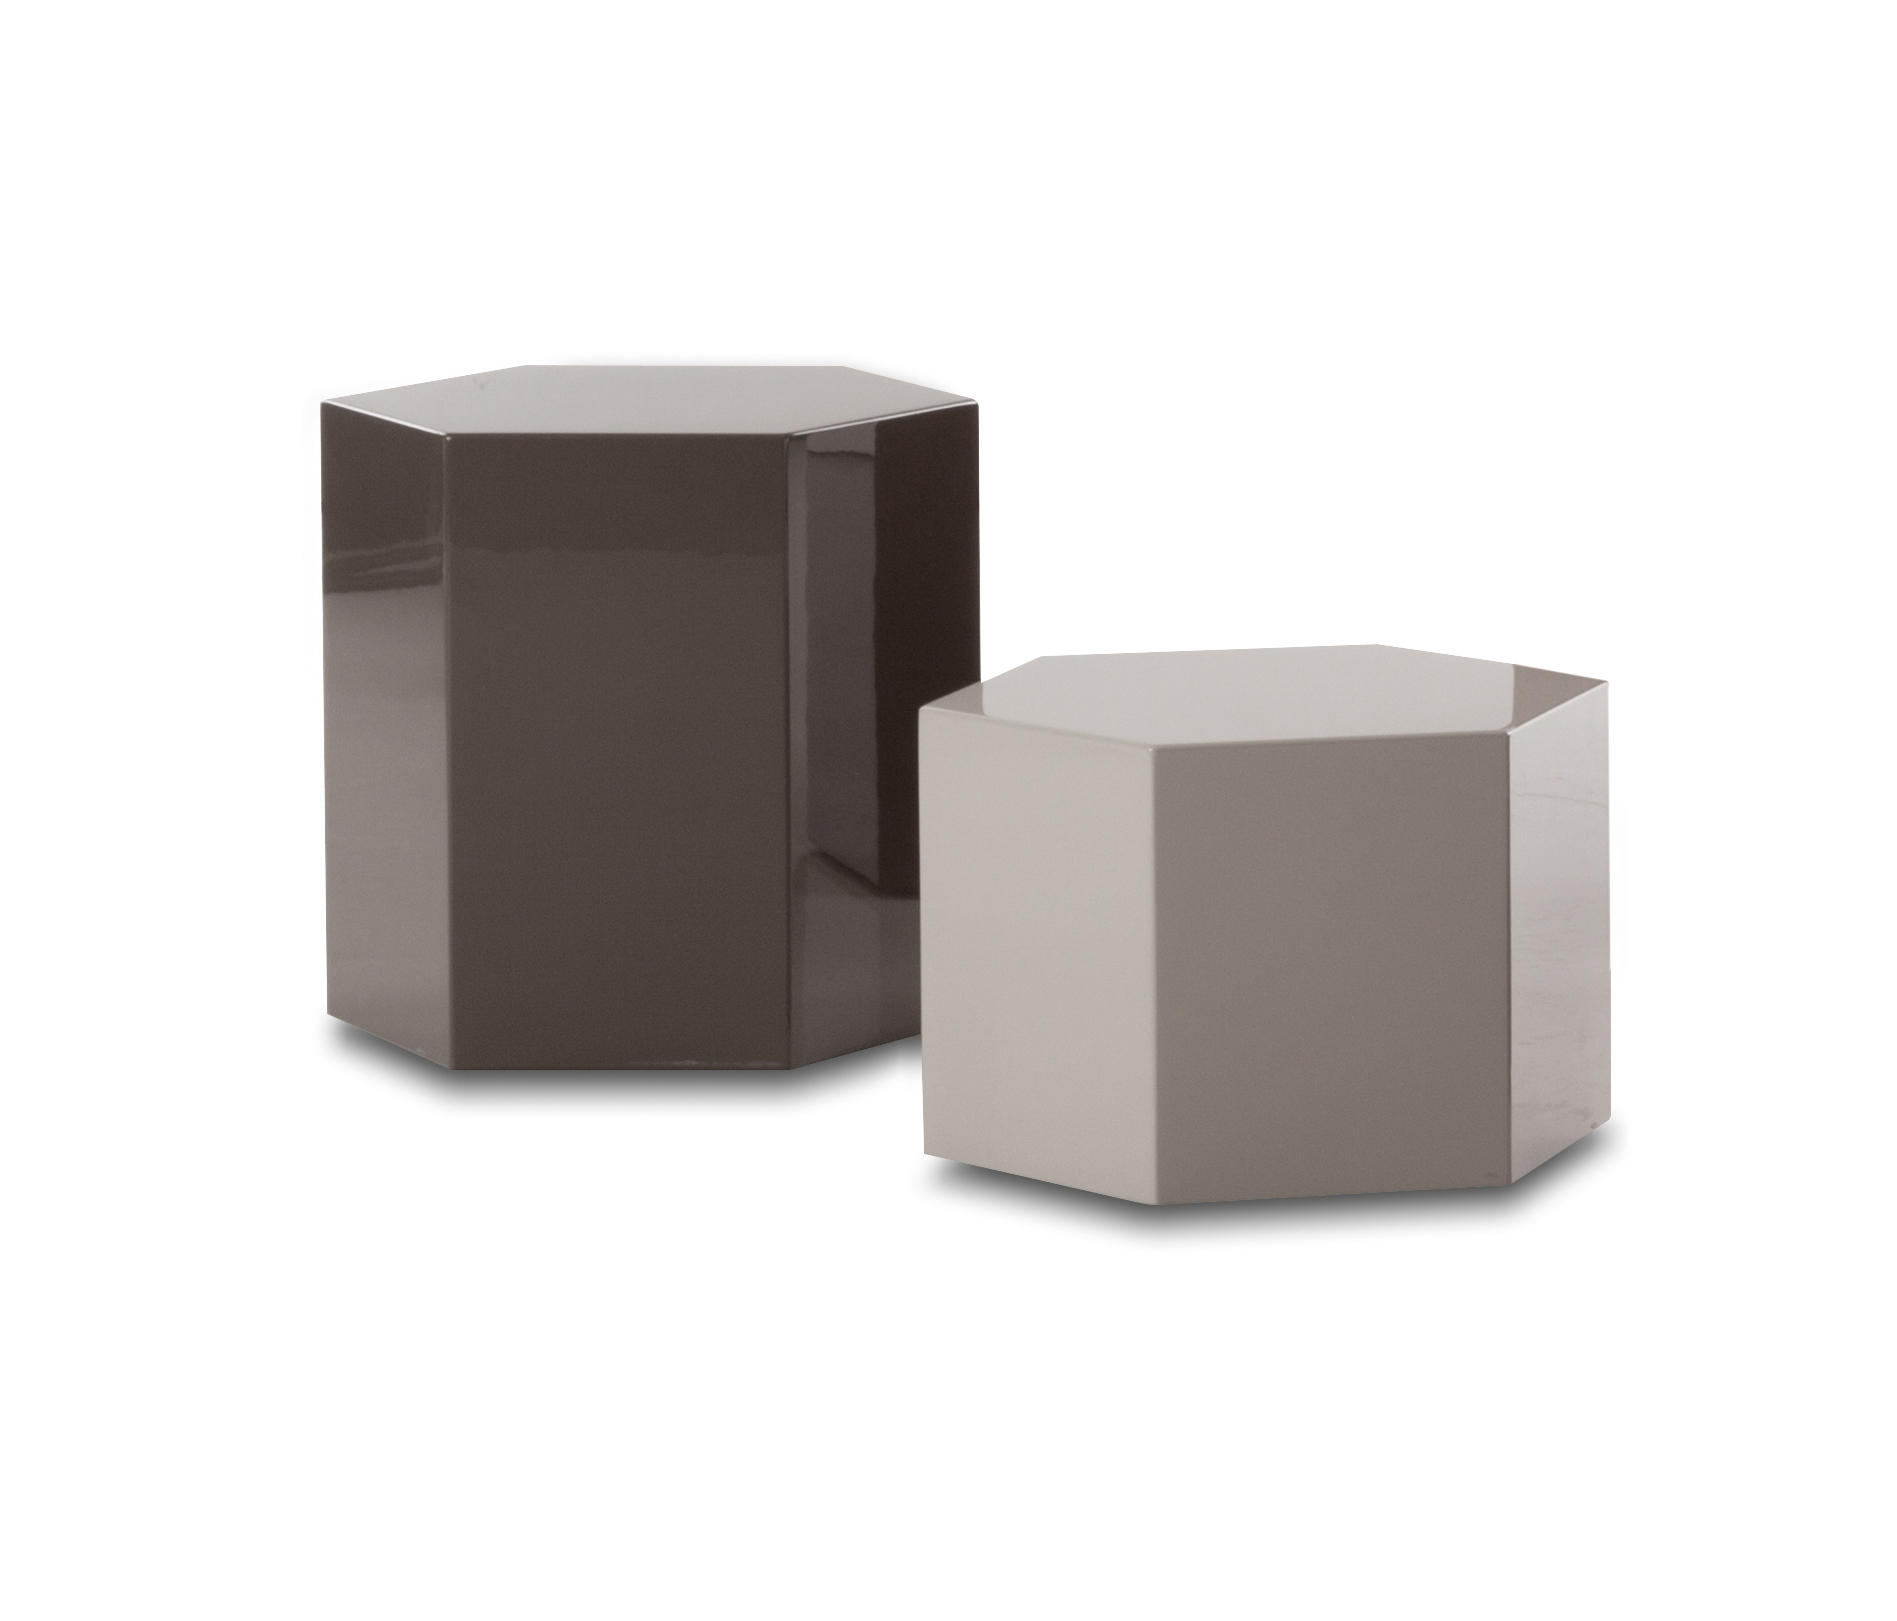 aeron outdoor accent tables side from minotti architonic furniture legs brass and glass table antique round occasional natural living tile patio white home accessories traditional